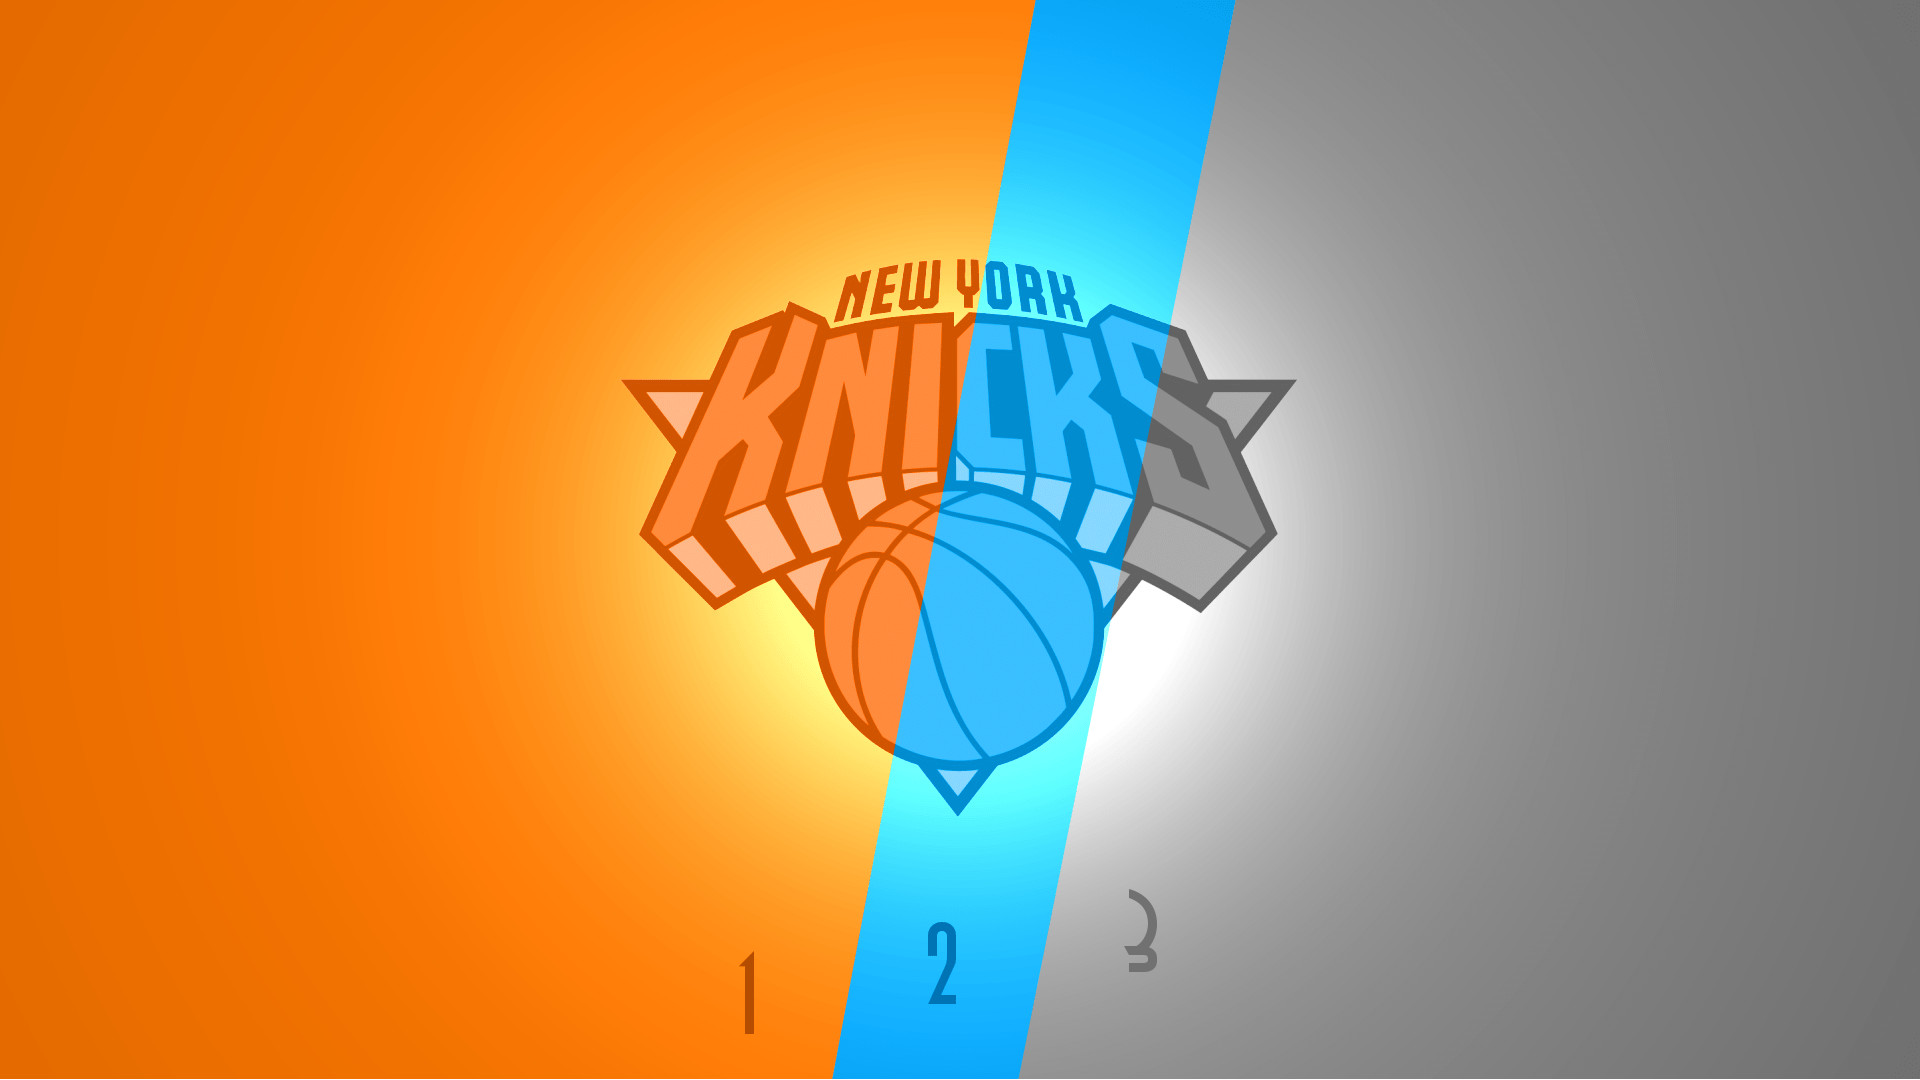 1920x1080 New York Knicks Wallpapers | Basketball Wallpapers at .